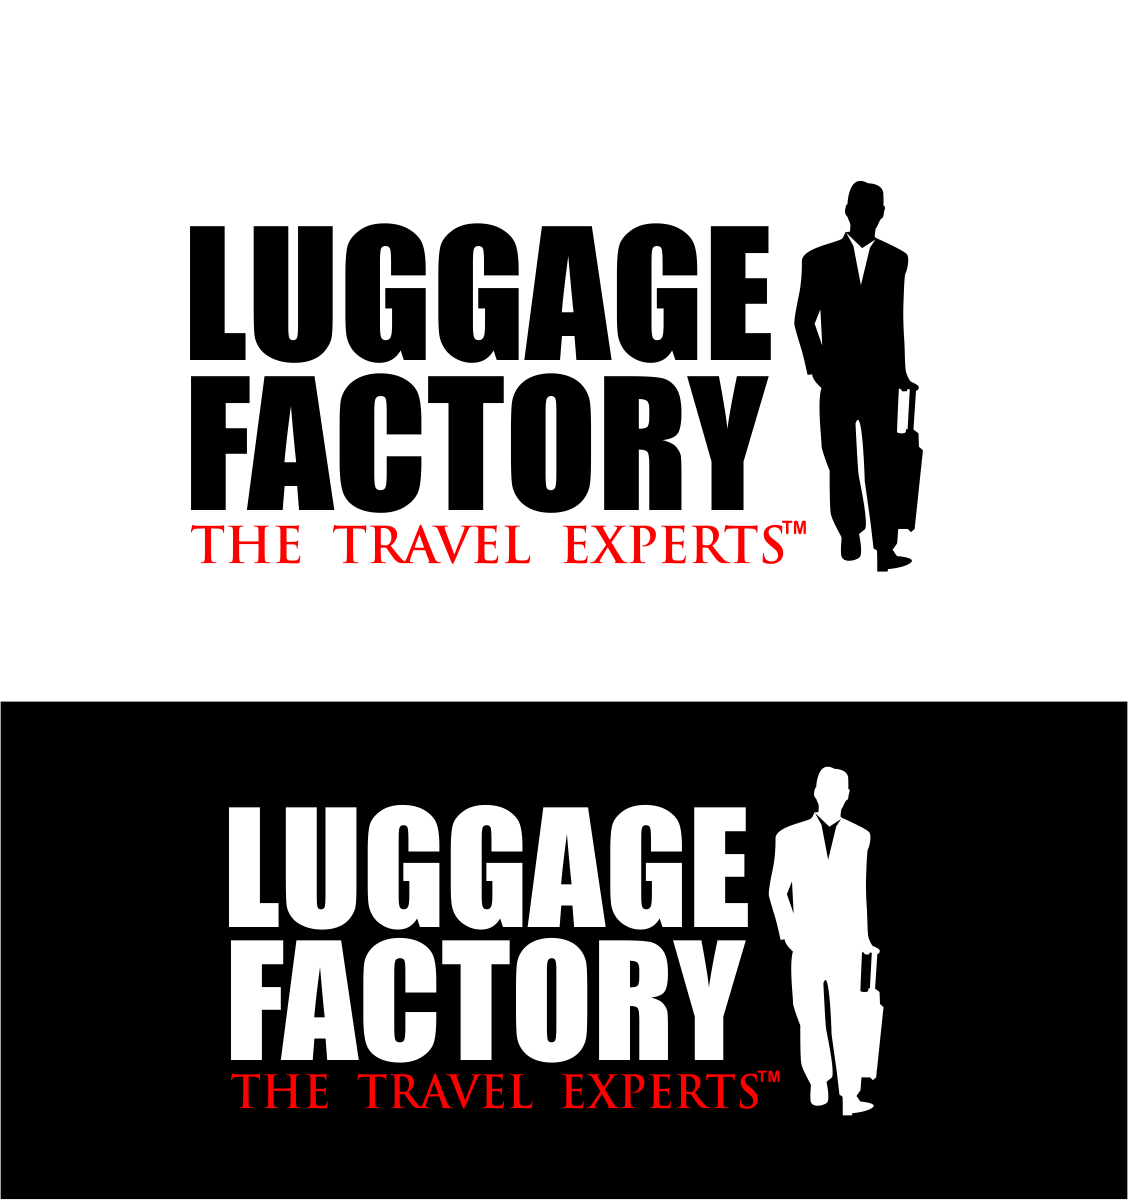 Logo Design by Agus Martoyo - Entry No. 235 in the Logo Design Contest Creative Logo Design for Luggage Factory.